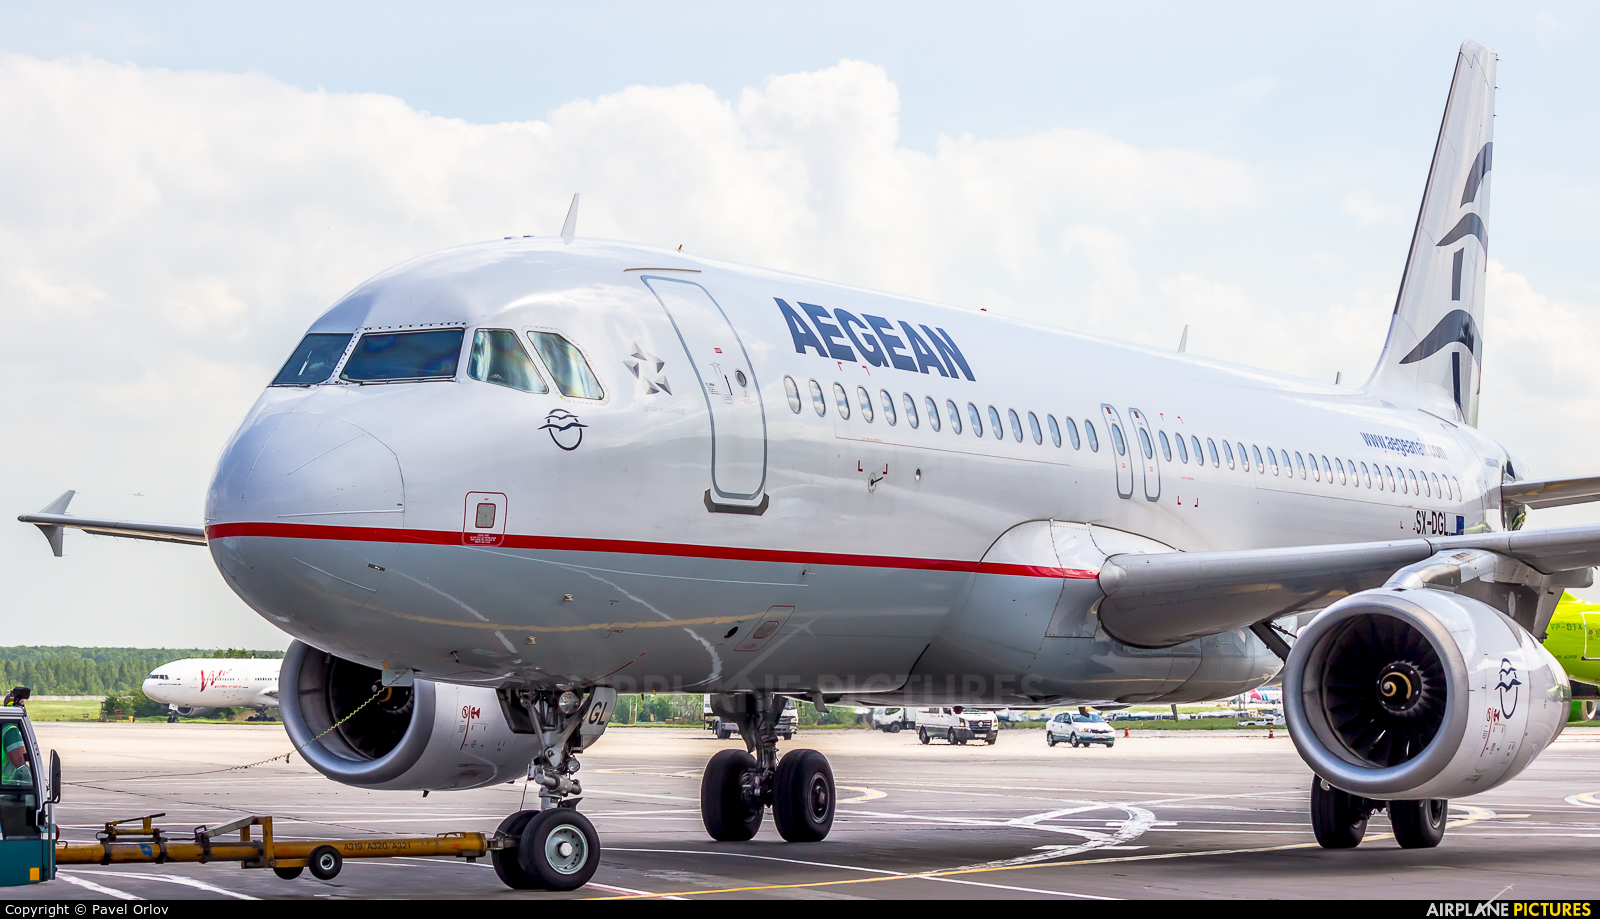 Aegean Airlines SX-DGL aircraft at Moscow - Domodedovo